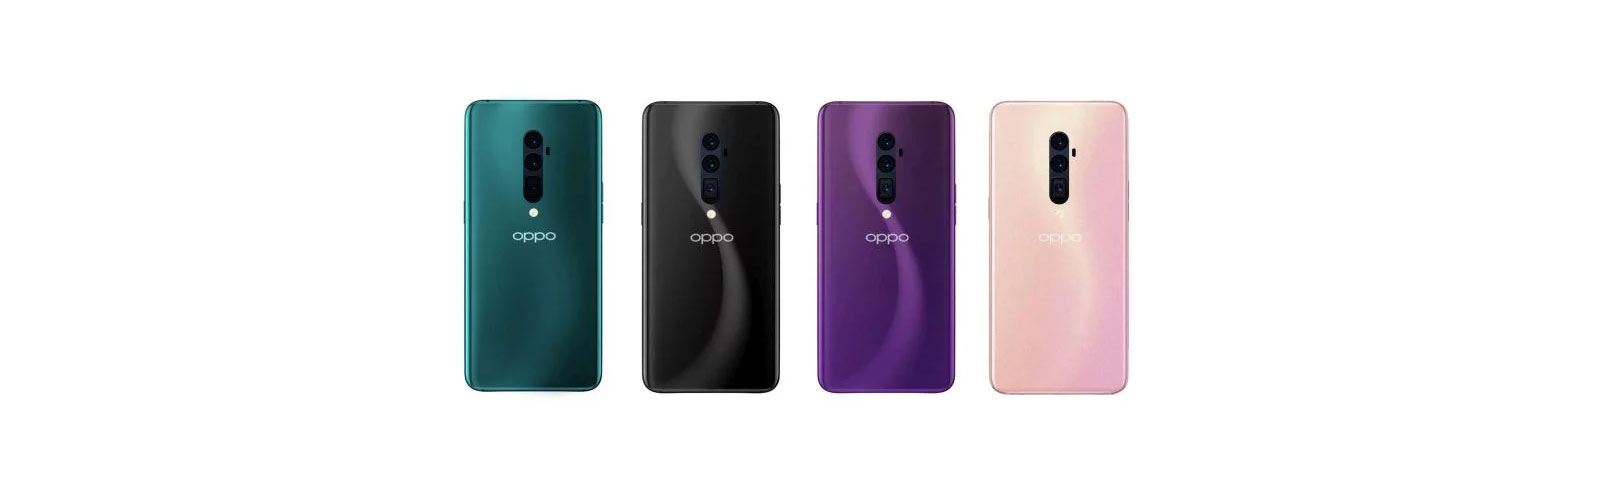 Oppo Reno 5G is launched in Europe via Swisscom